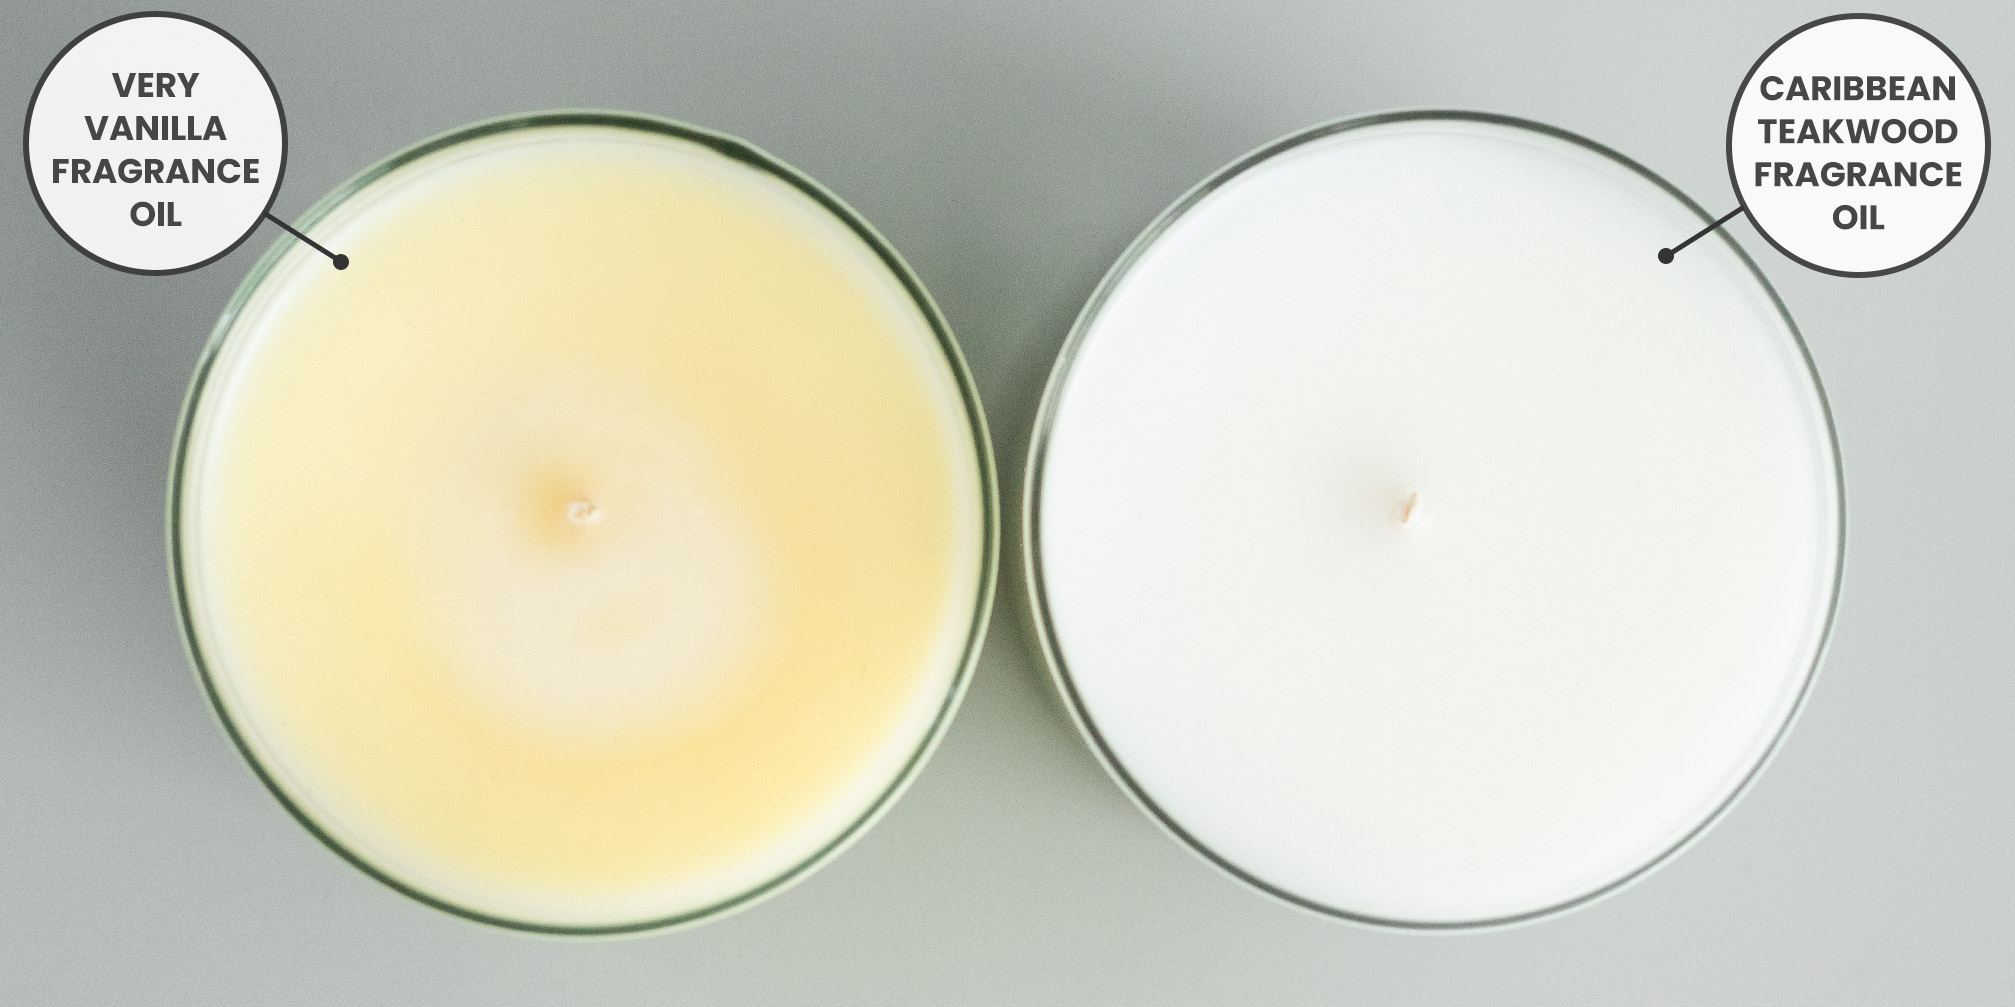 CandleScience - Candle Making Supplies | Soy Wax, Candle